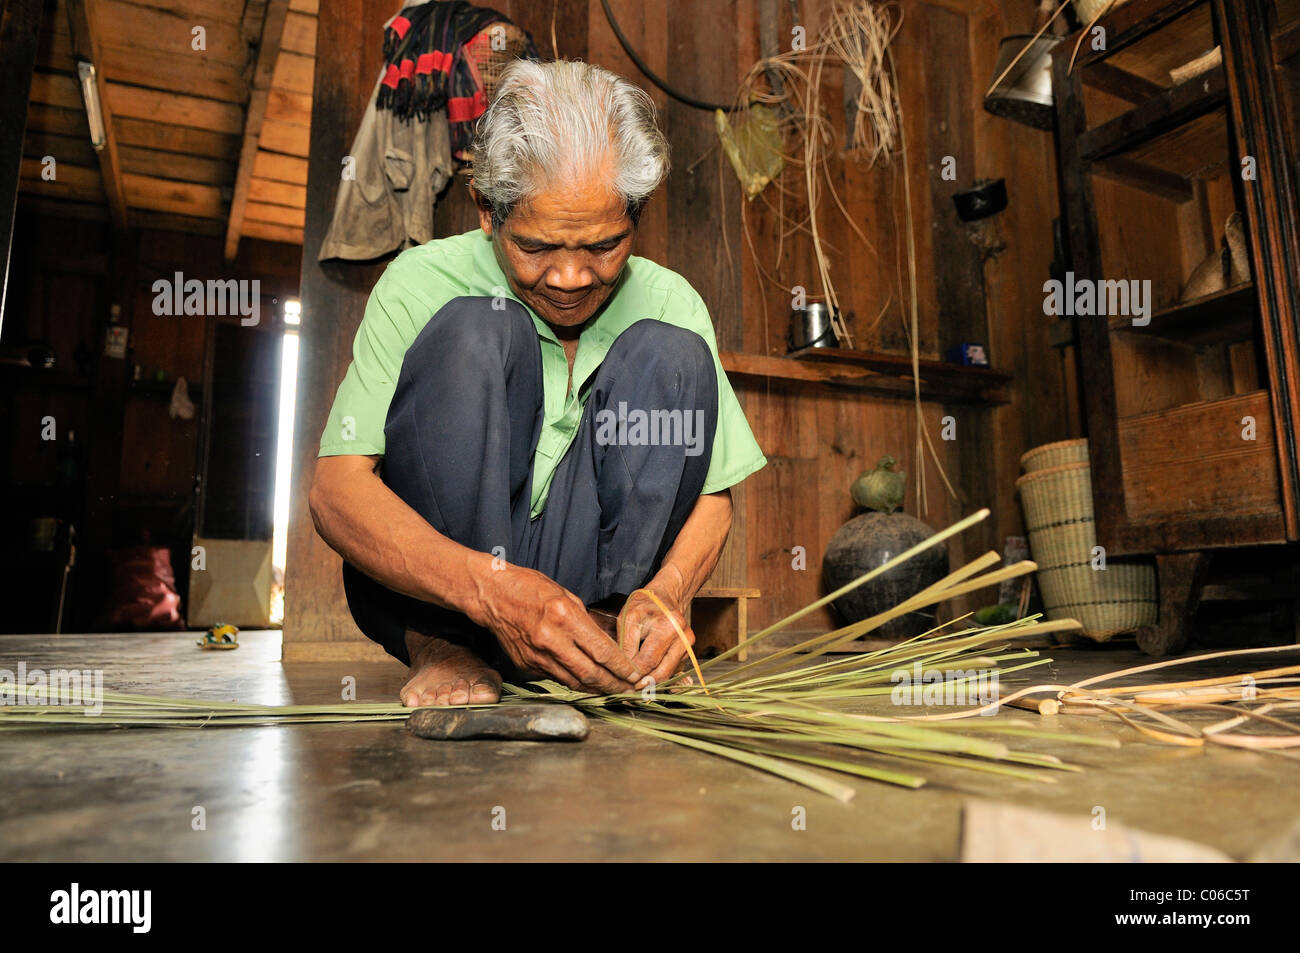 Old man weaving basket, Vietnam, Asia Stock Photo